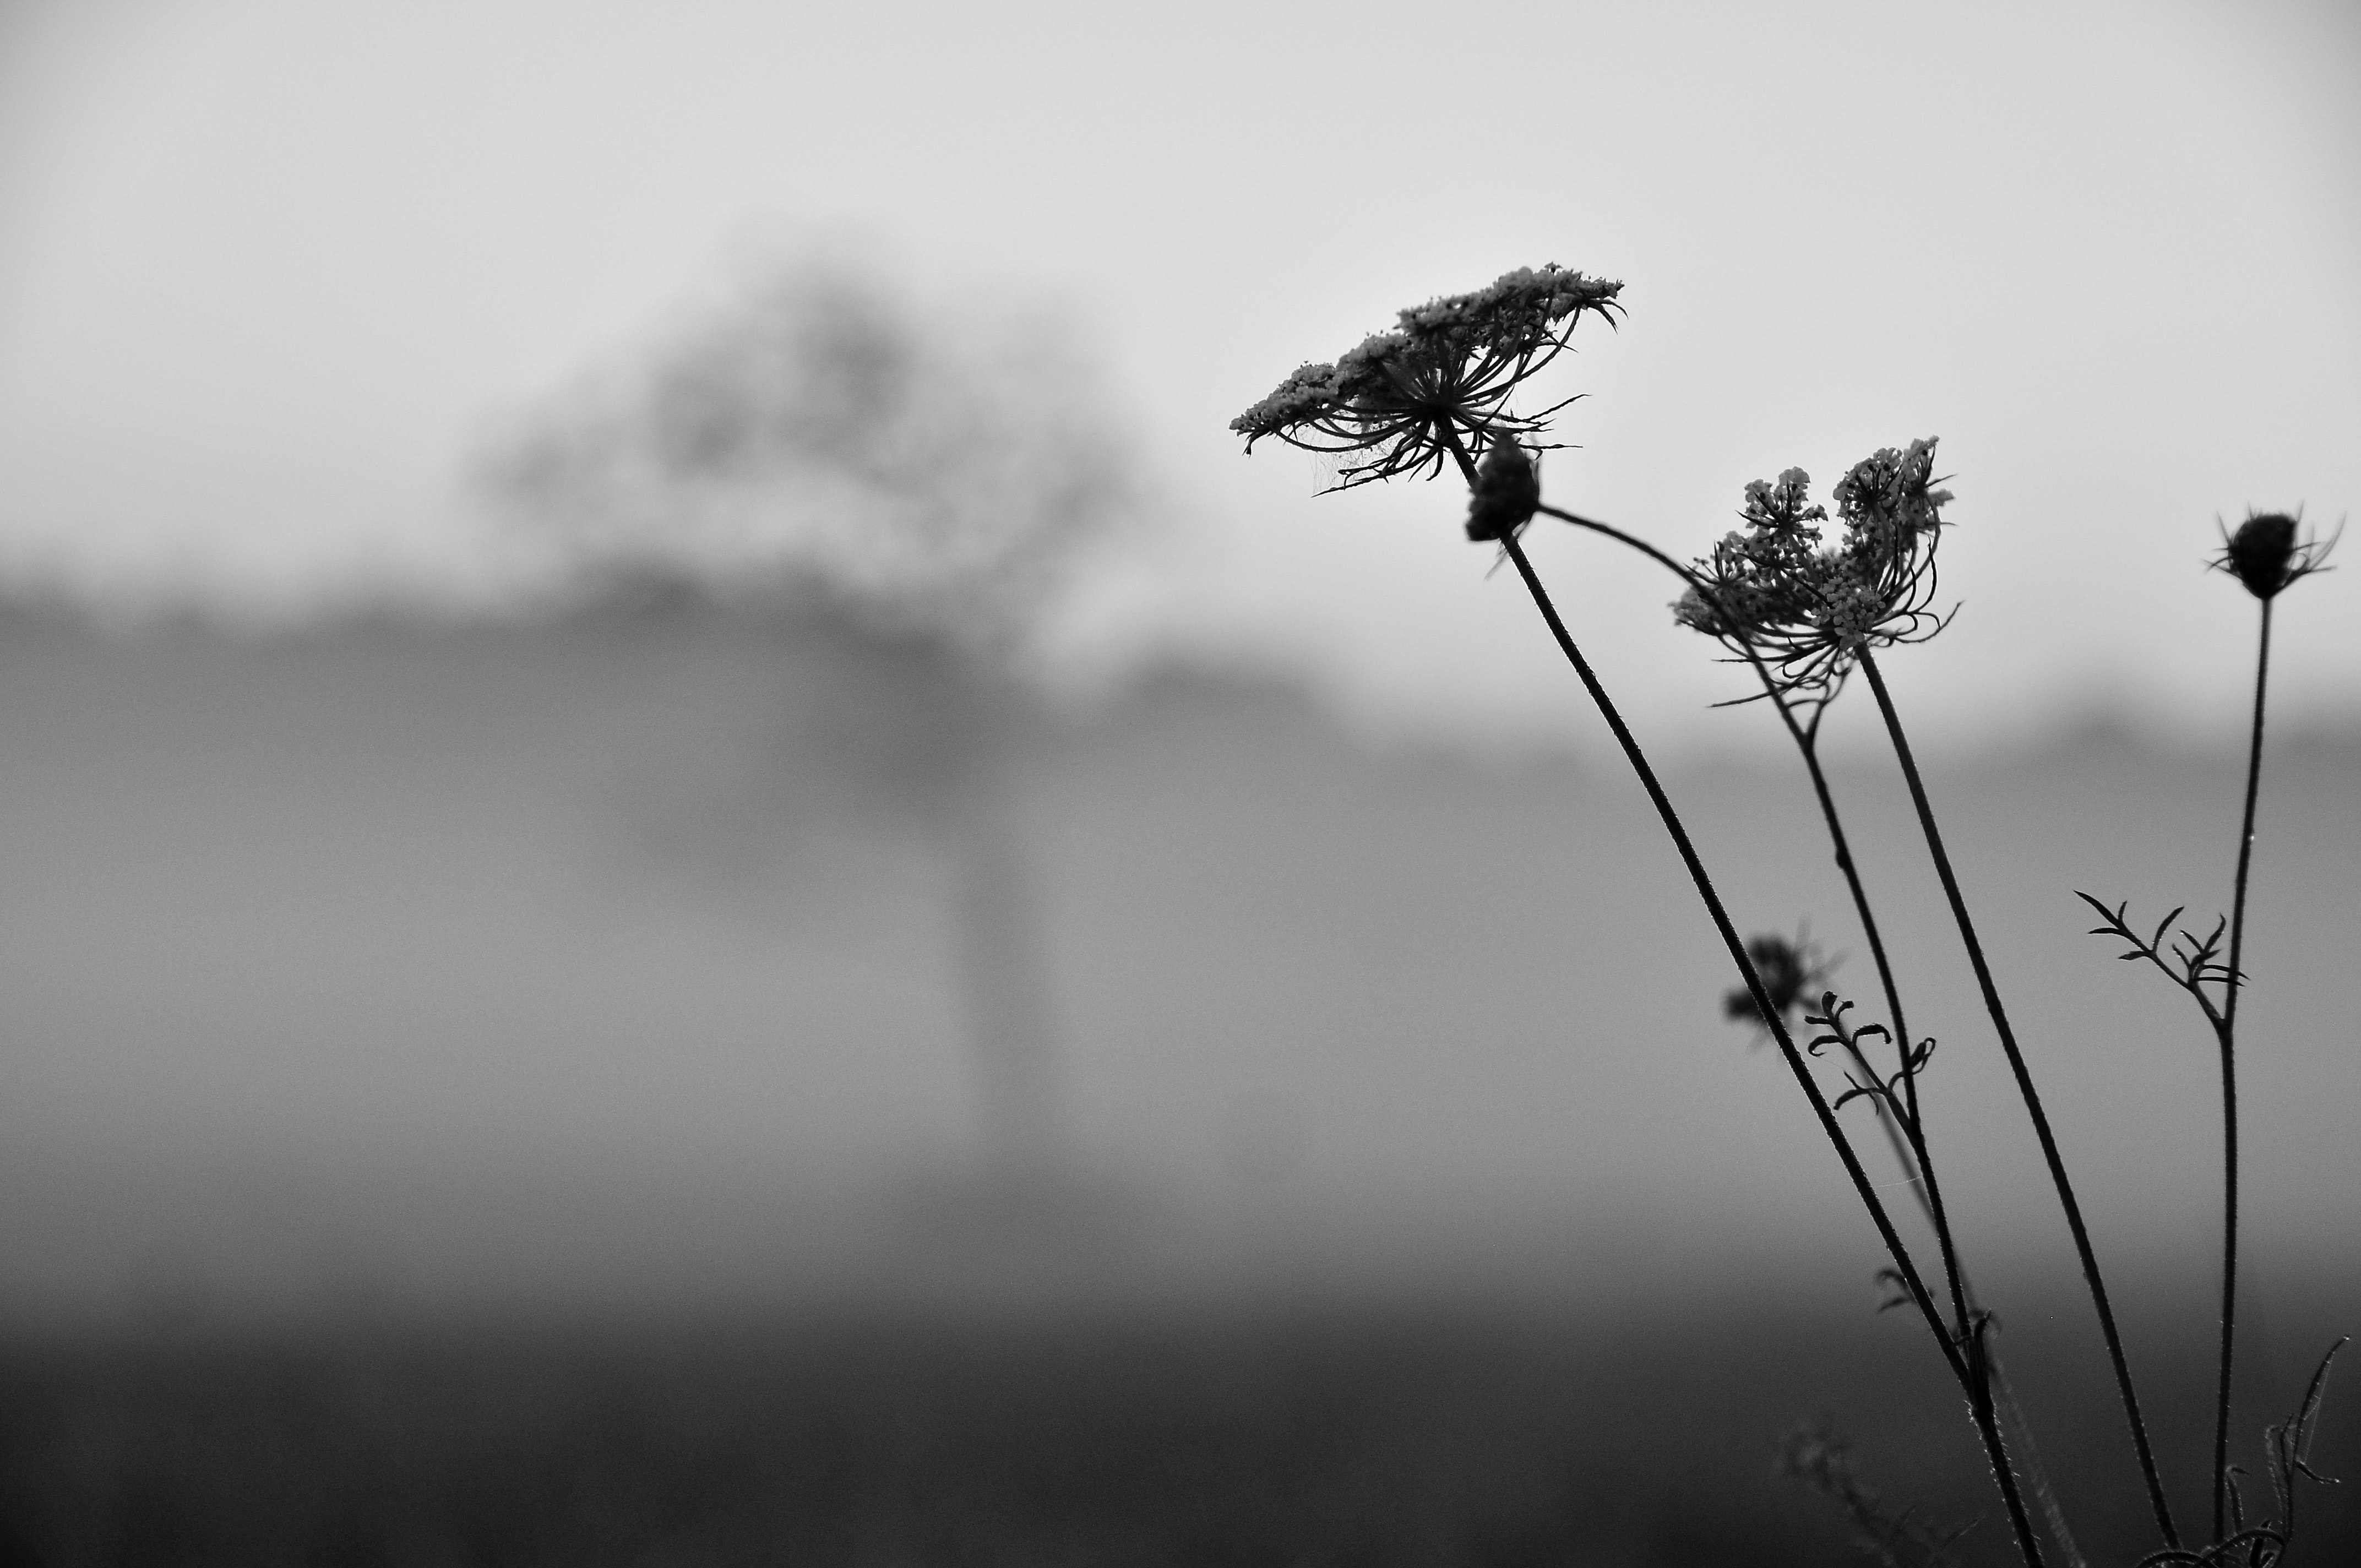 Grayscale photo of withered flower